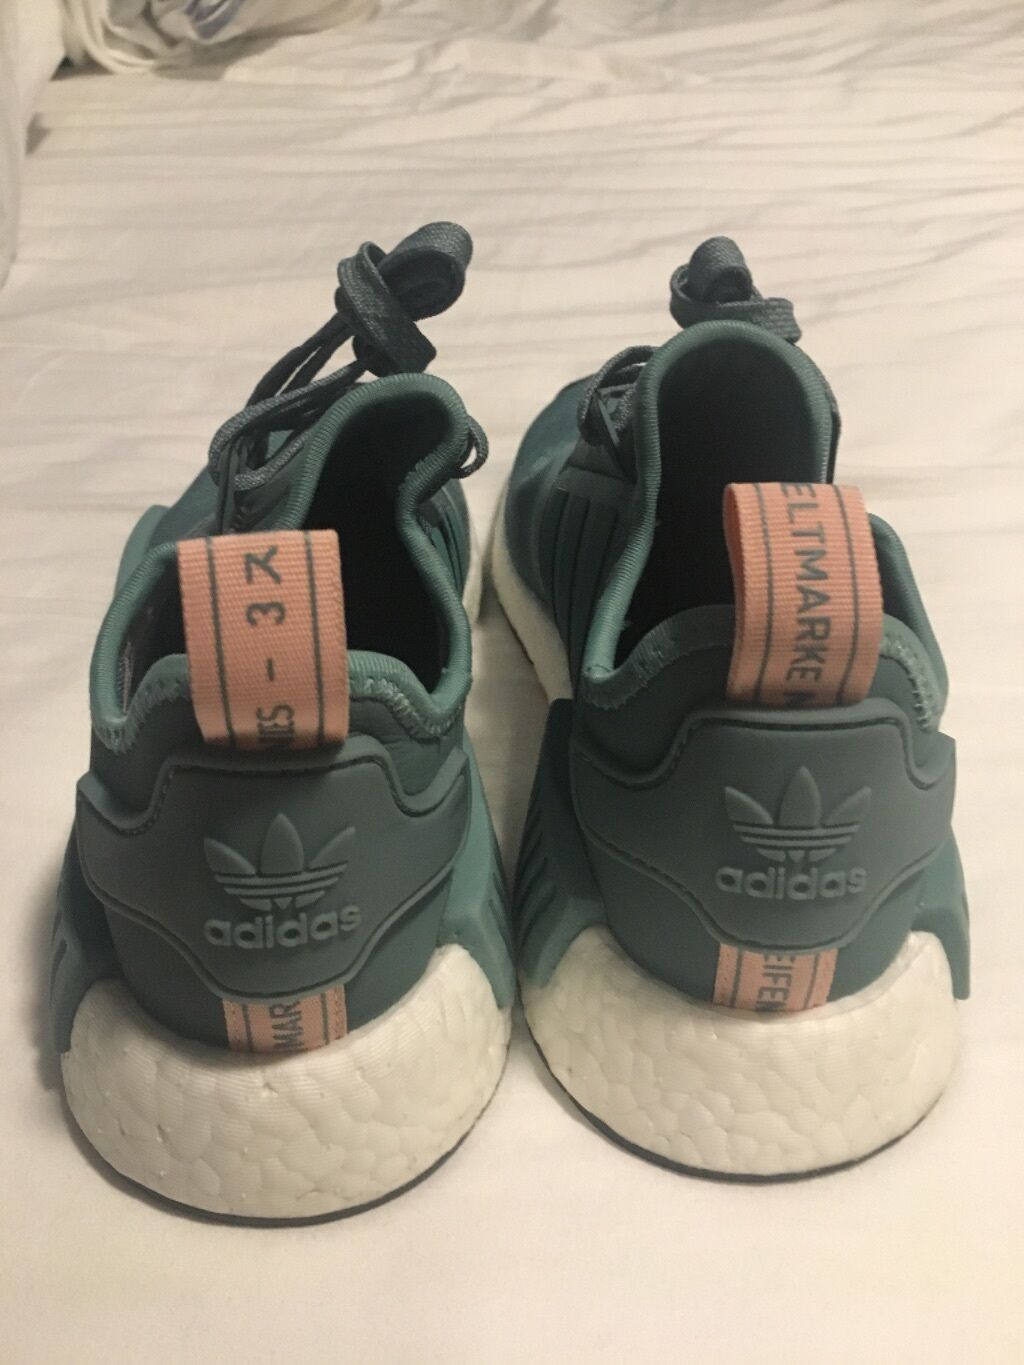 Adidas NMD womens vapour green green vapour and pink SIZE 5.5 ab7cc6